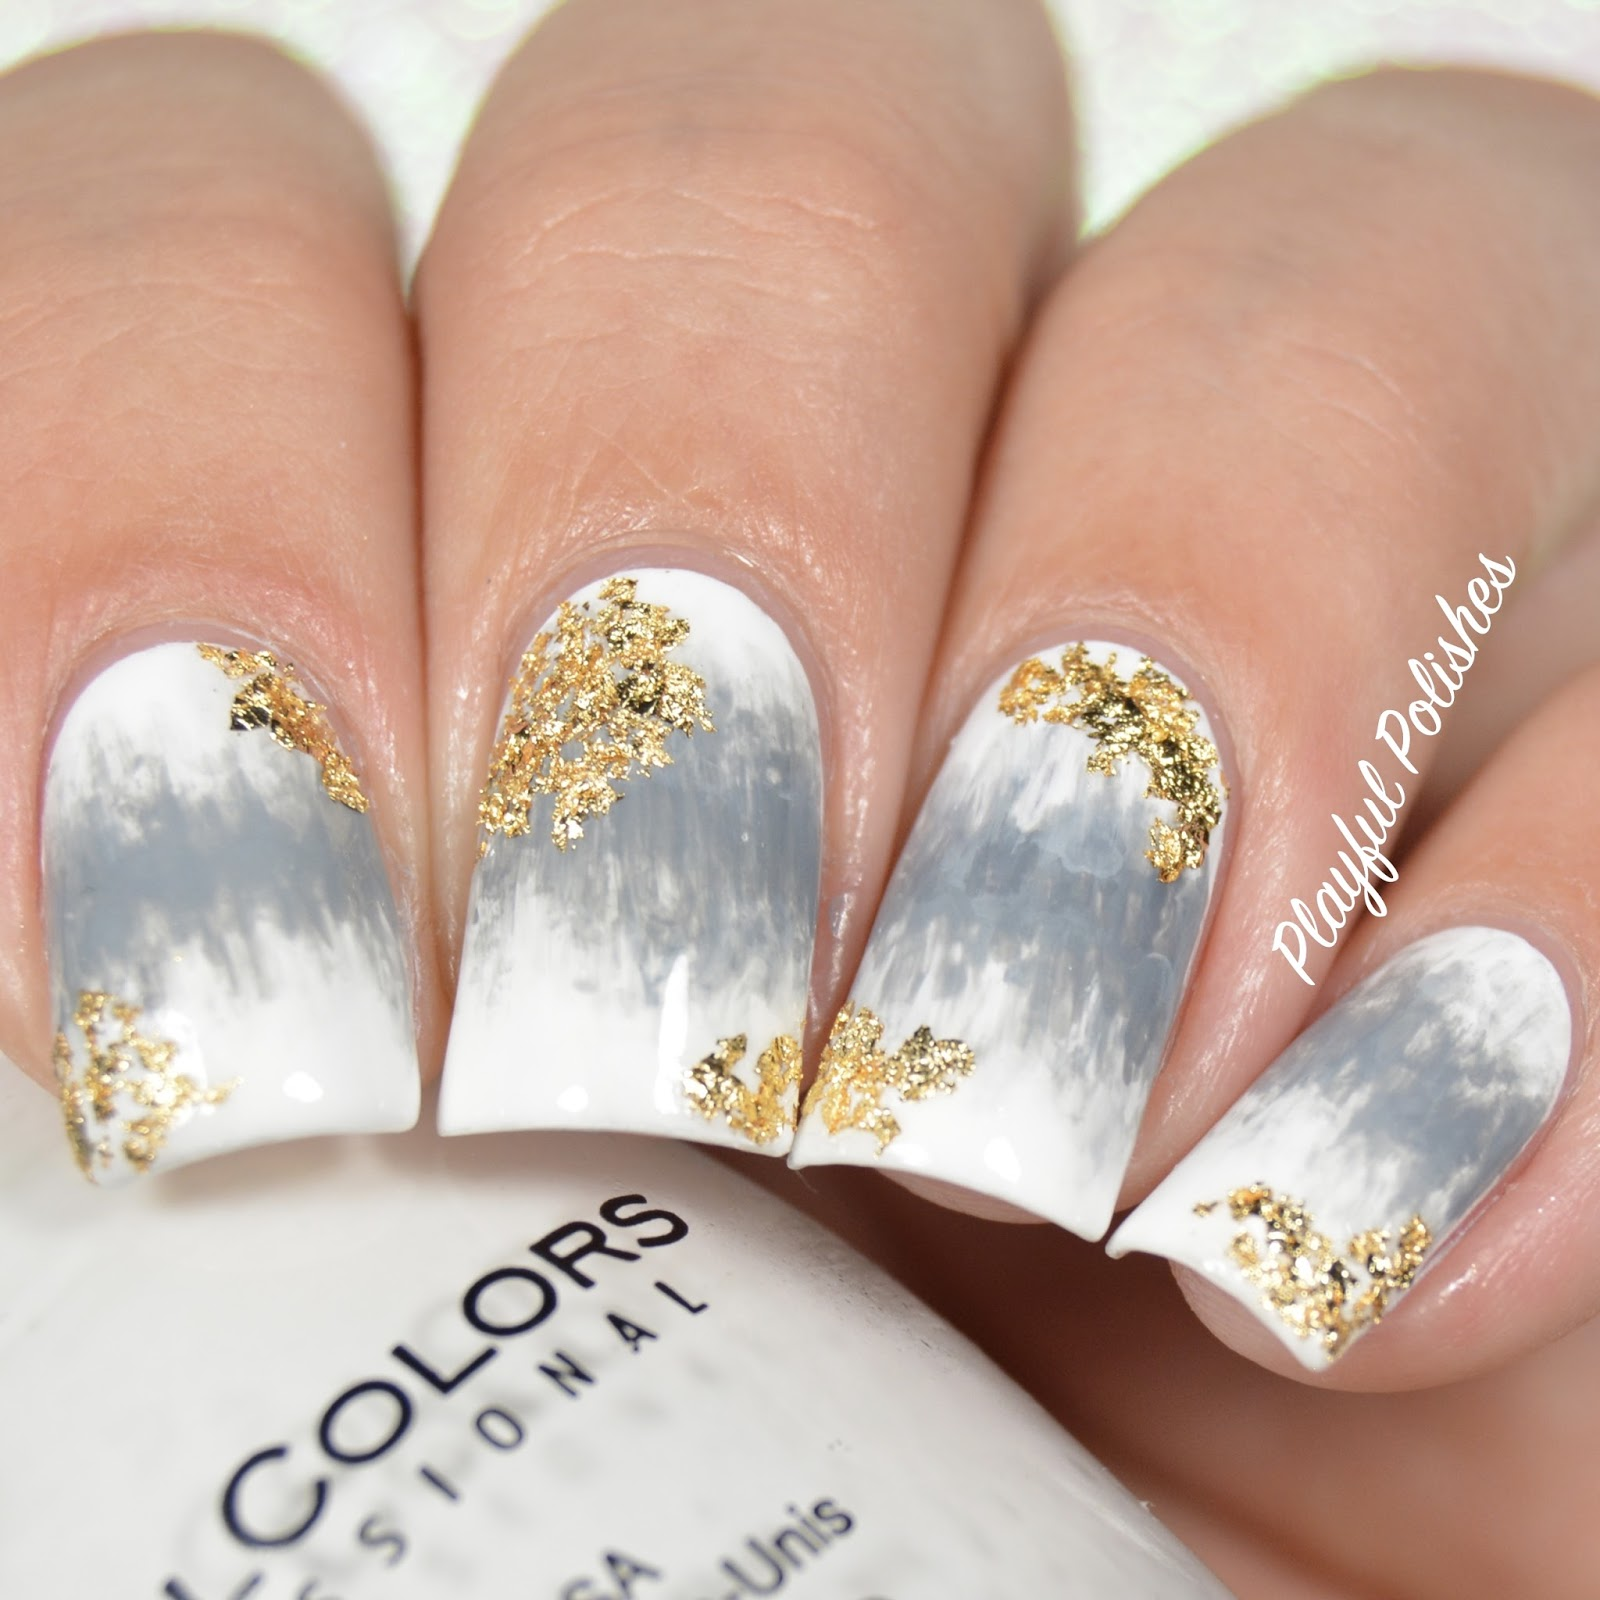 Playful Polishes: 31 DAY NAIL ART CHALLENGE 2016 ROUND UP